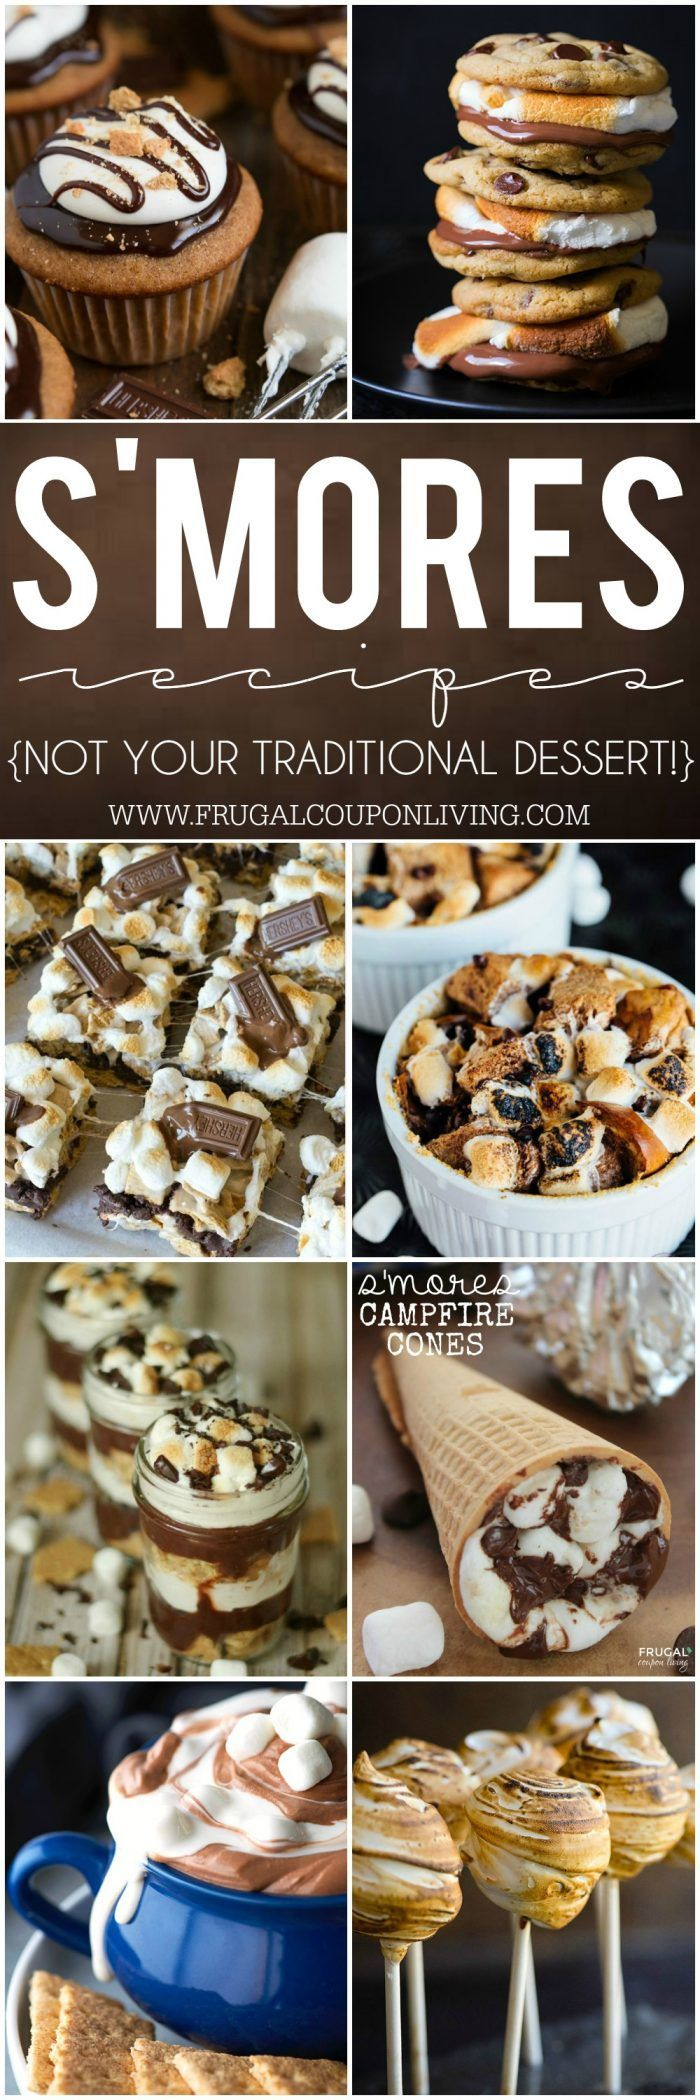 S'mores Recipes that Will Change Your Life on Frugal Coupon Living. Never make the traditional smore again! Dessert Recipe ideas.